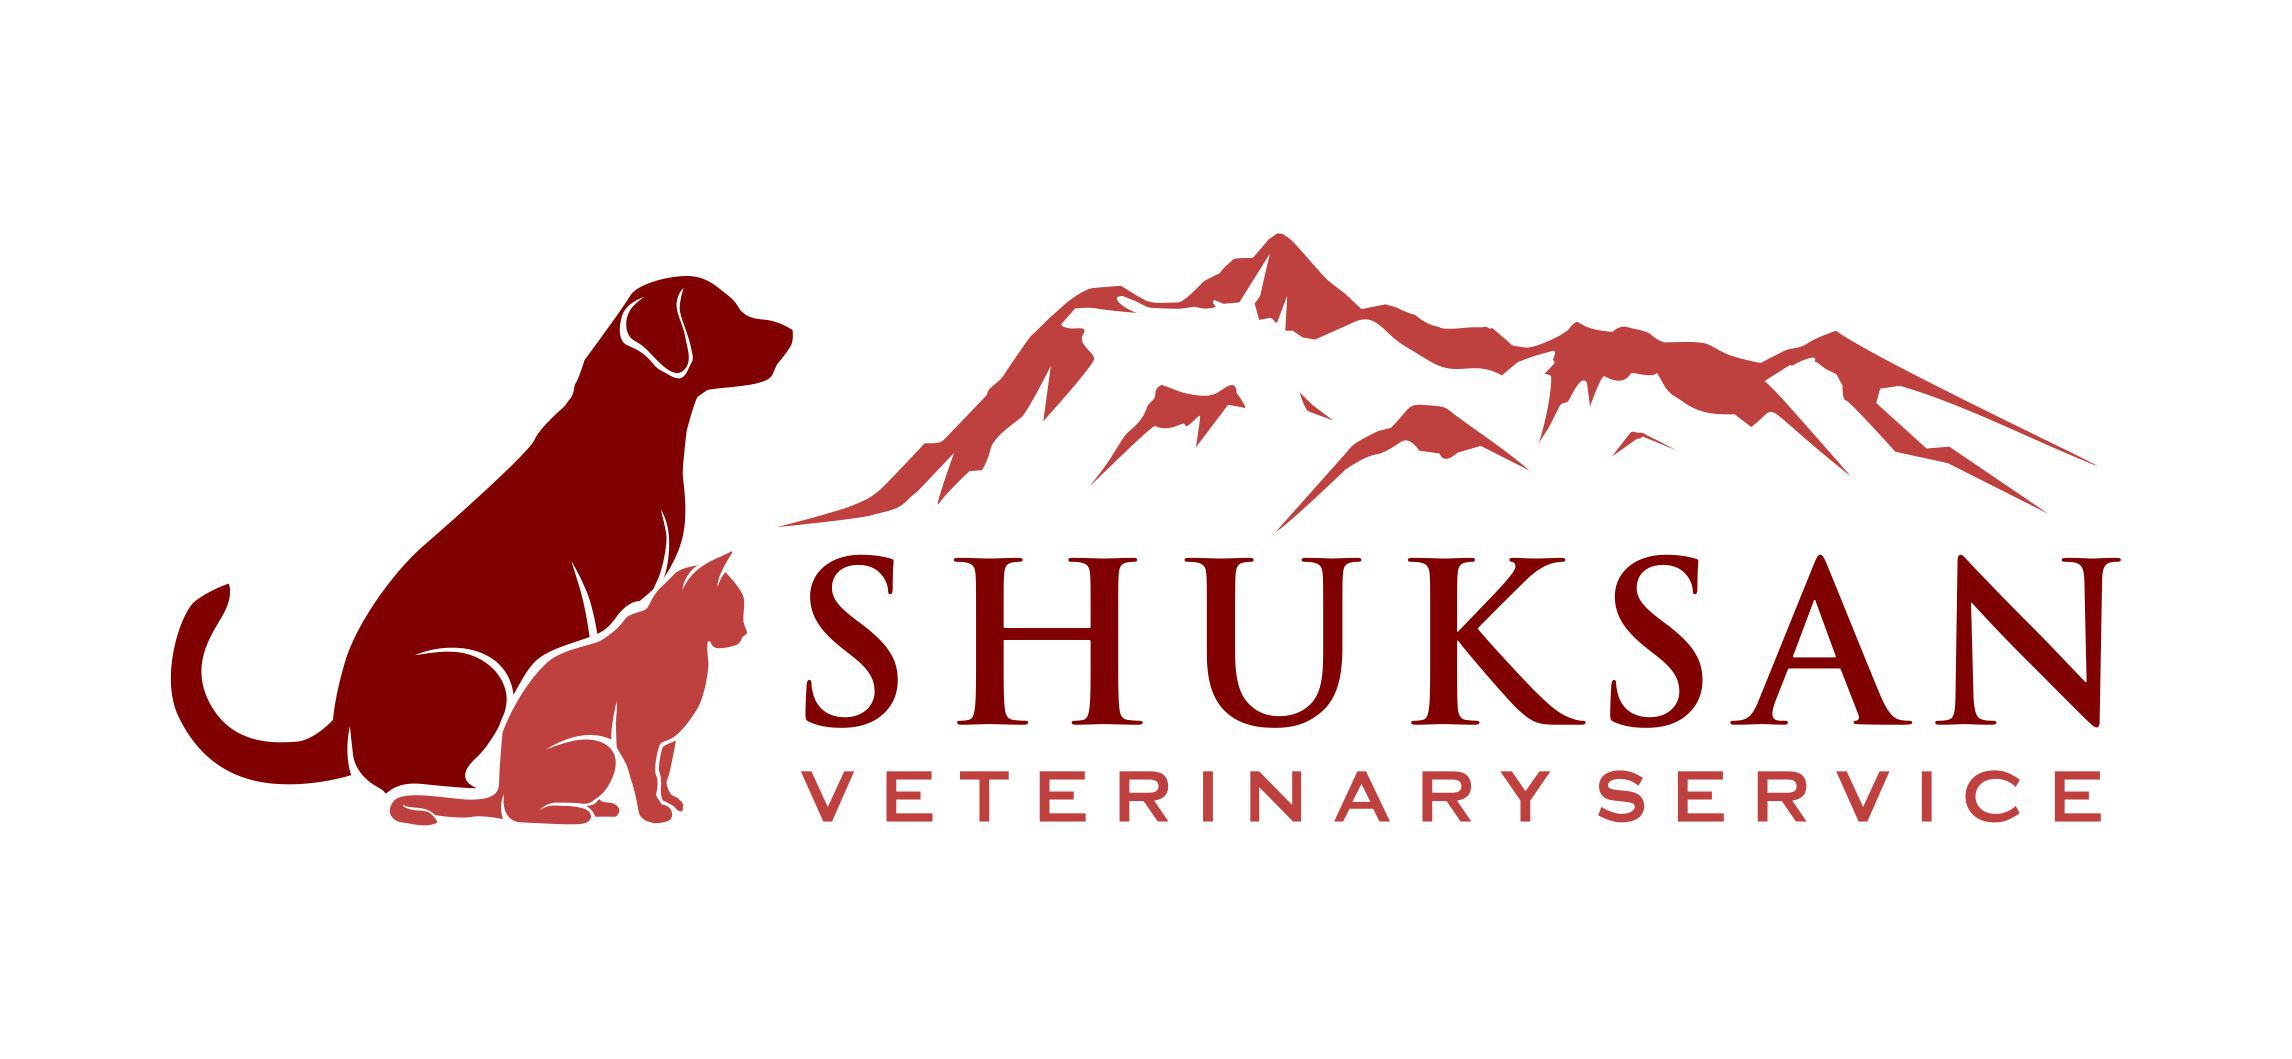 Mountains and Dogs! Create a stylized mountain logo for a veterinary ultrasound company.